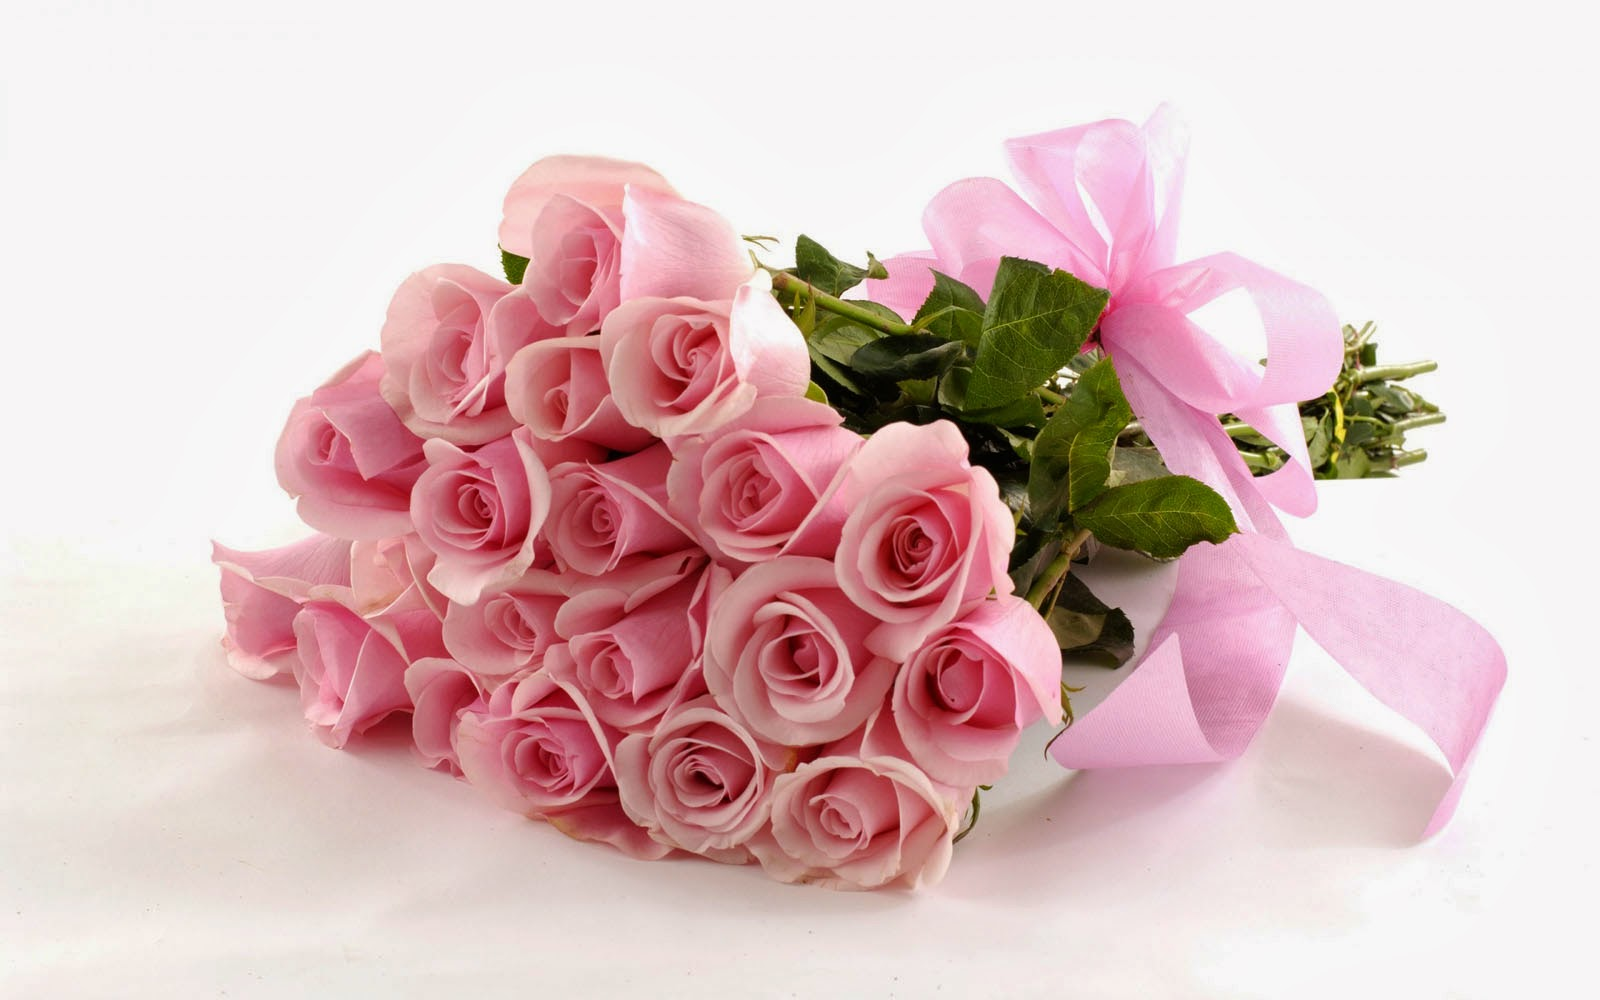 pure pink rose bouquet - photo #2